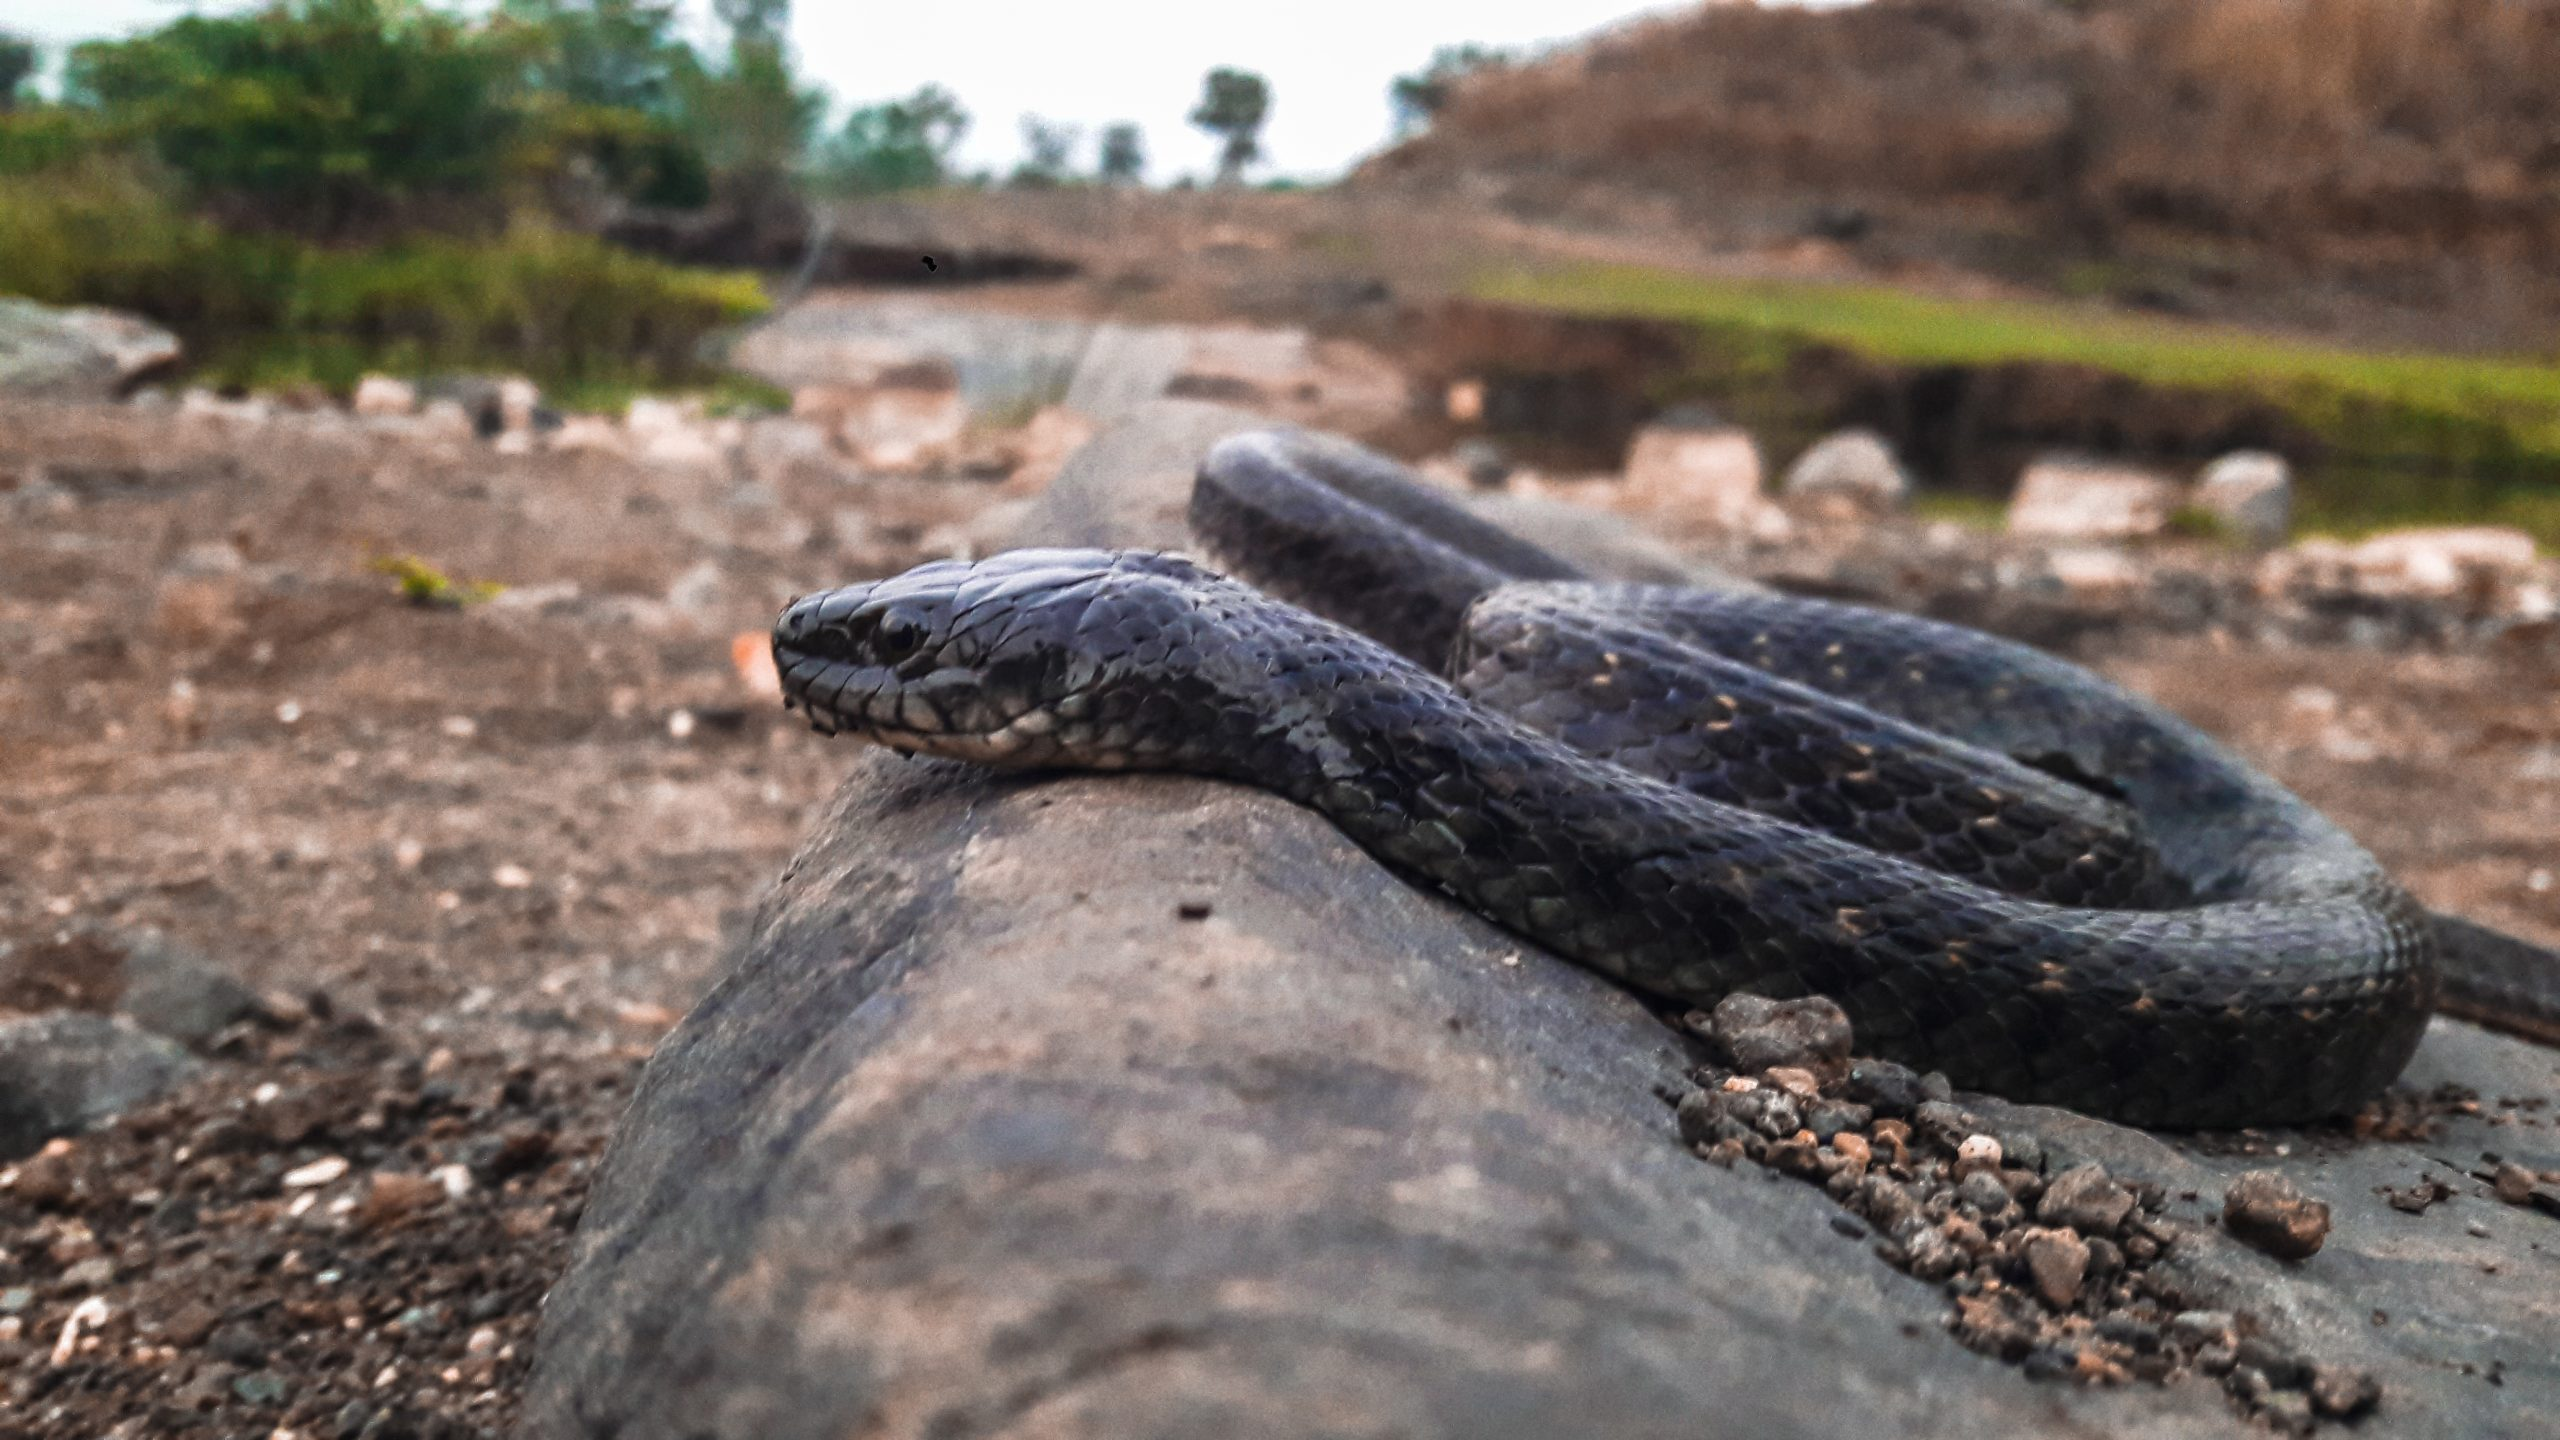 Black snake on rock